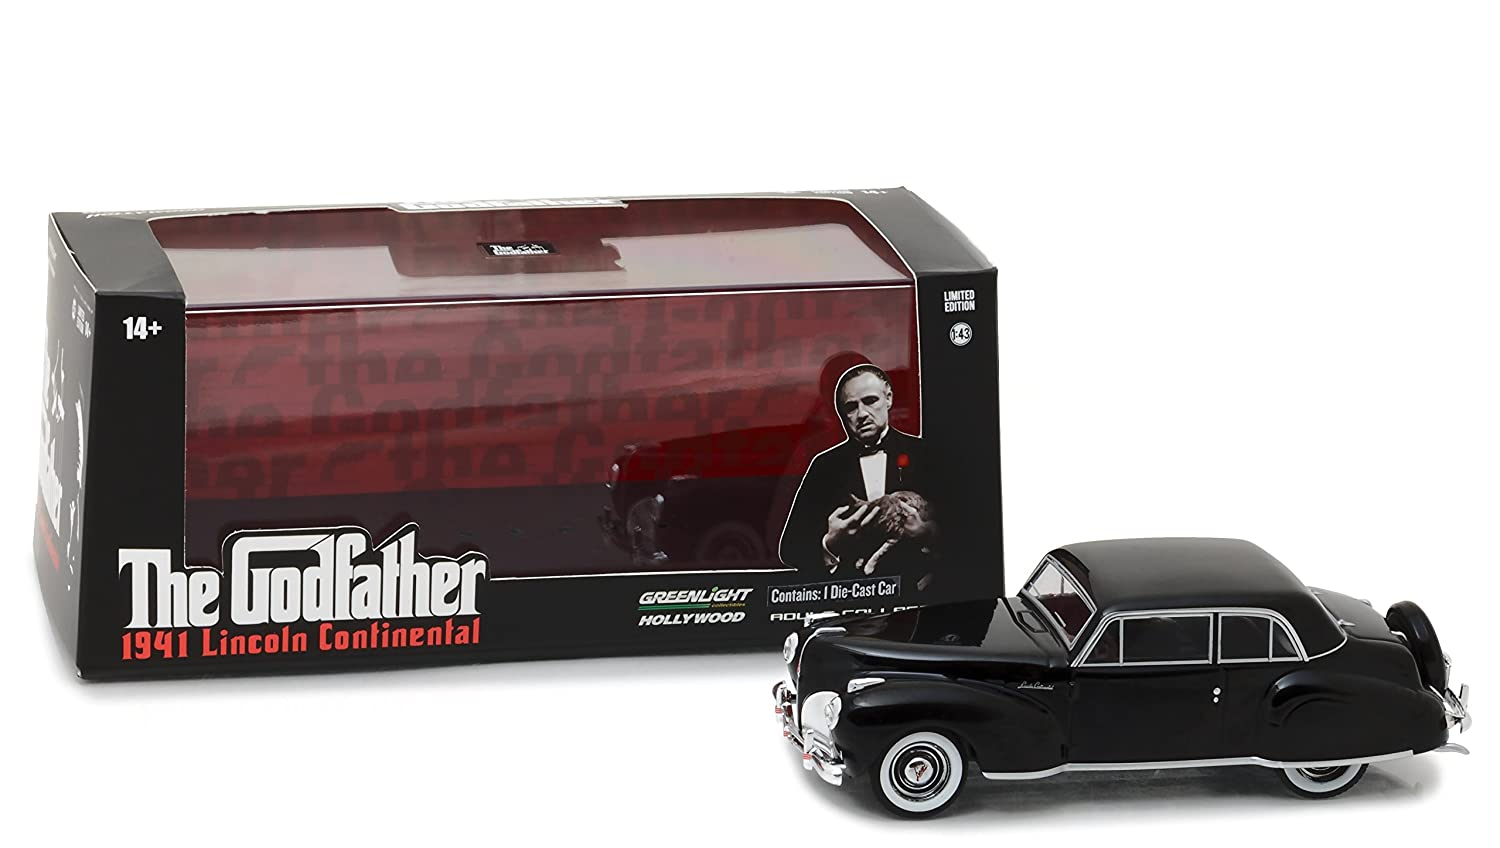 Greenlight 86507 1 43 the Godfather 1972 1941 Lincoln Continental Die Cast Vehicle